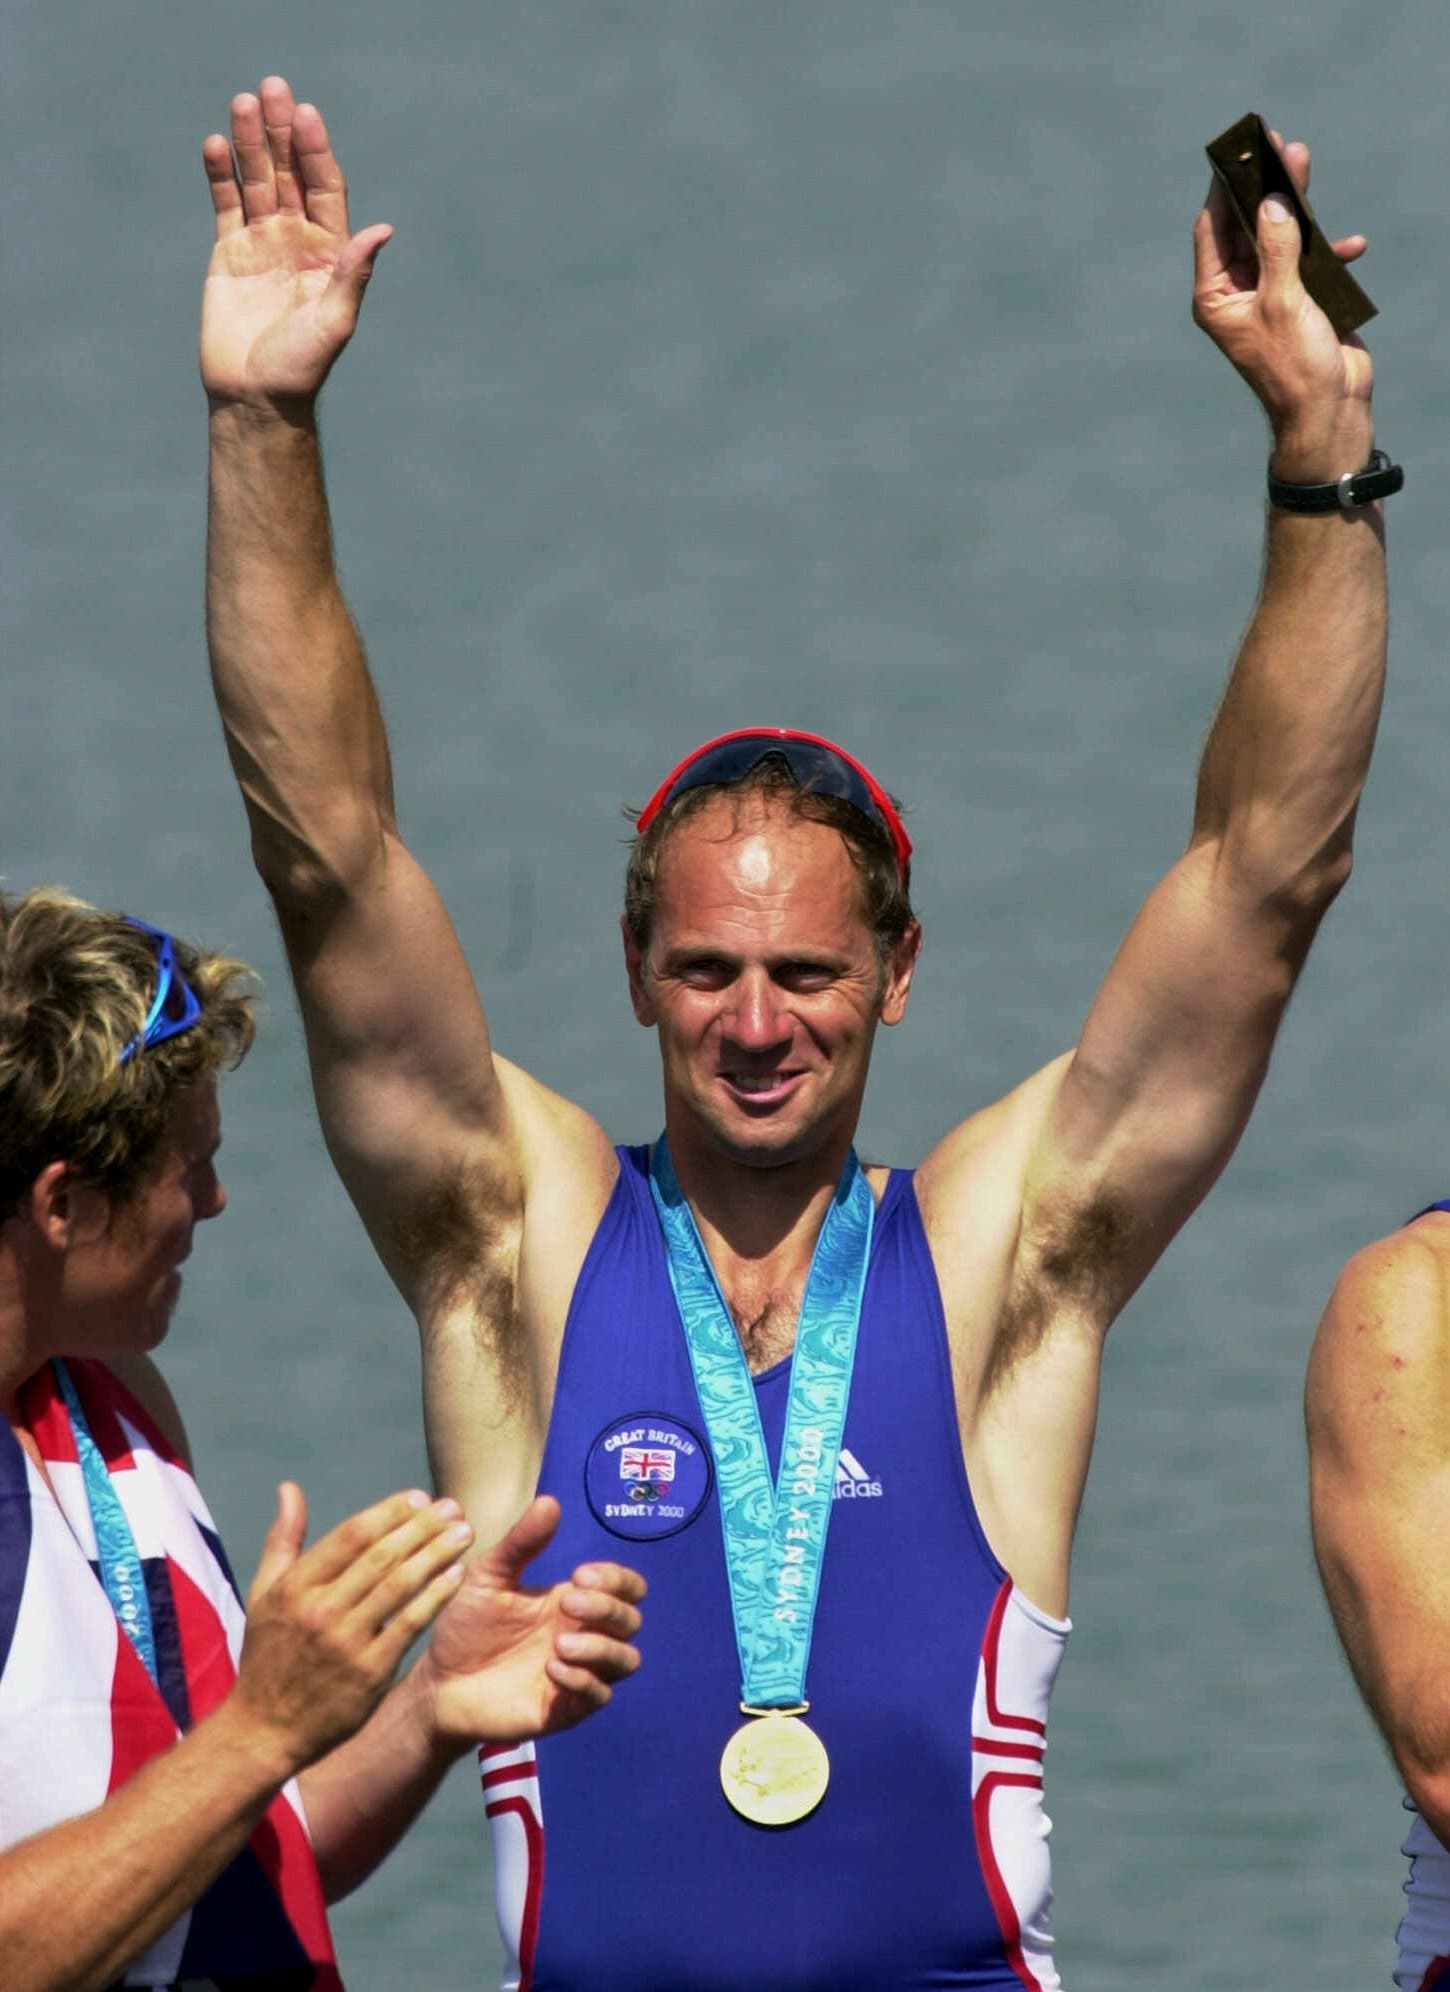 Steven Redgrave acknowledges the crowd after receiving a special gold pin Saturday, Sept. 23, 2000, at the Sydney International Regatta Center in Penrith, Australia. He received the pin in honor of winning five consecutive gold medals. Looking on at left is teammate James Cracknell. (AP)